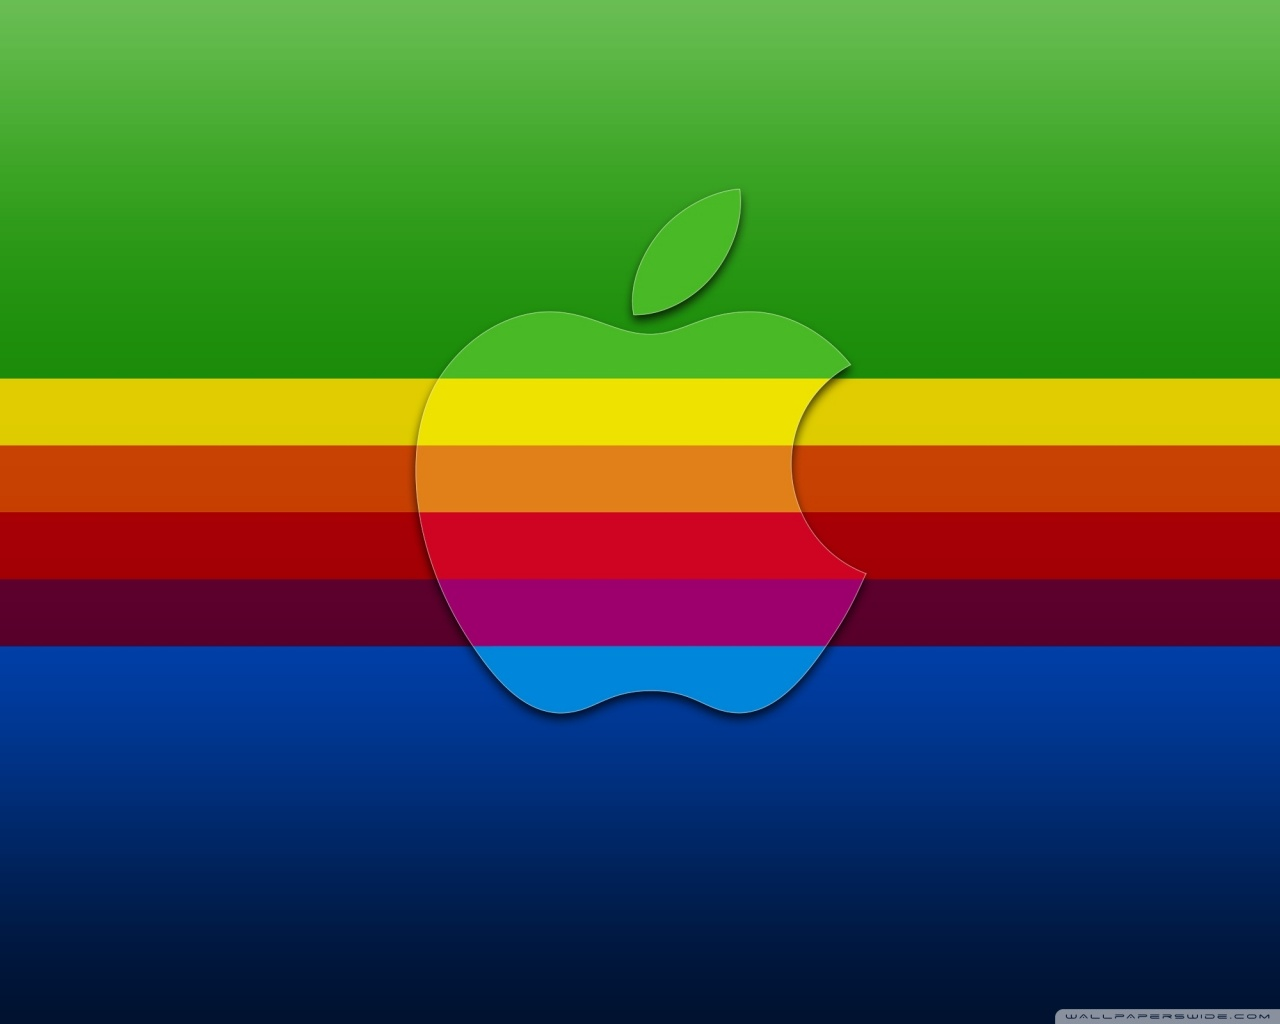 Colorful_apple_background-wallpaper.jpg